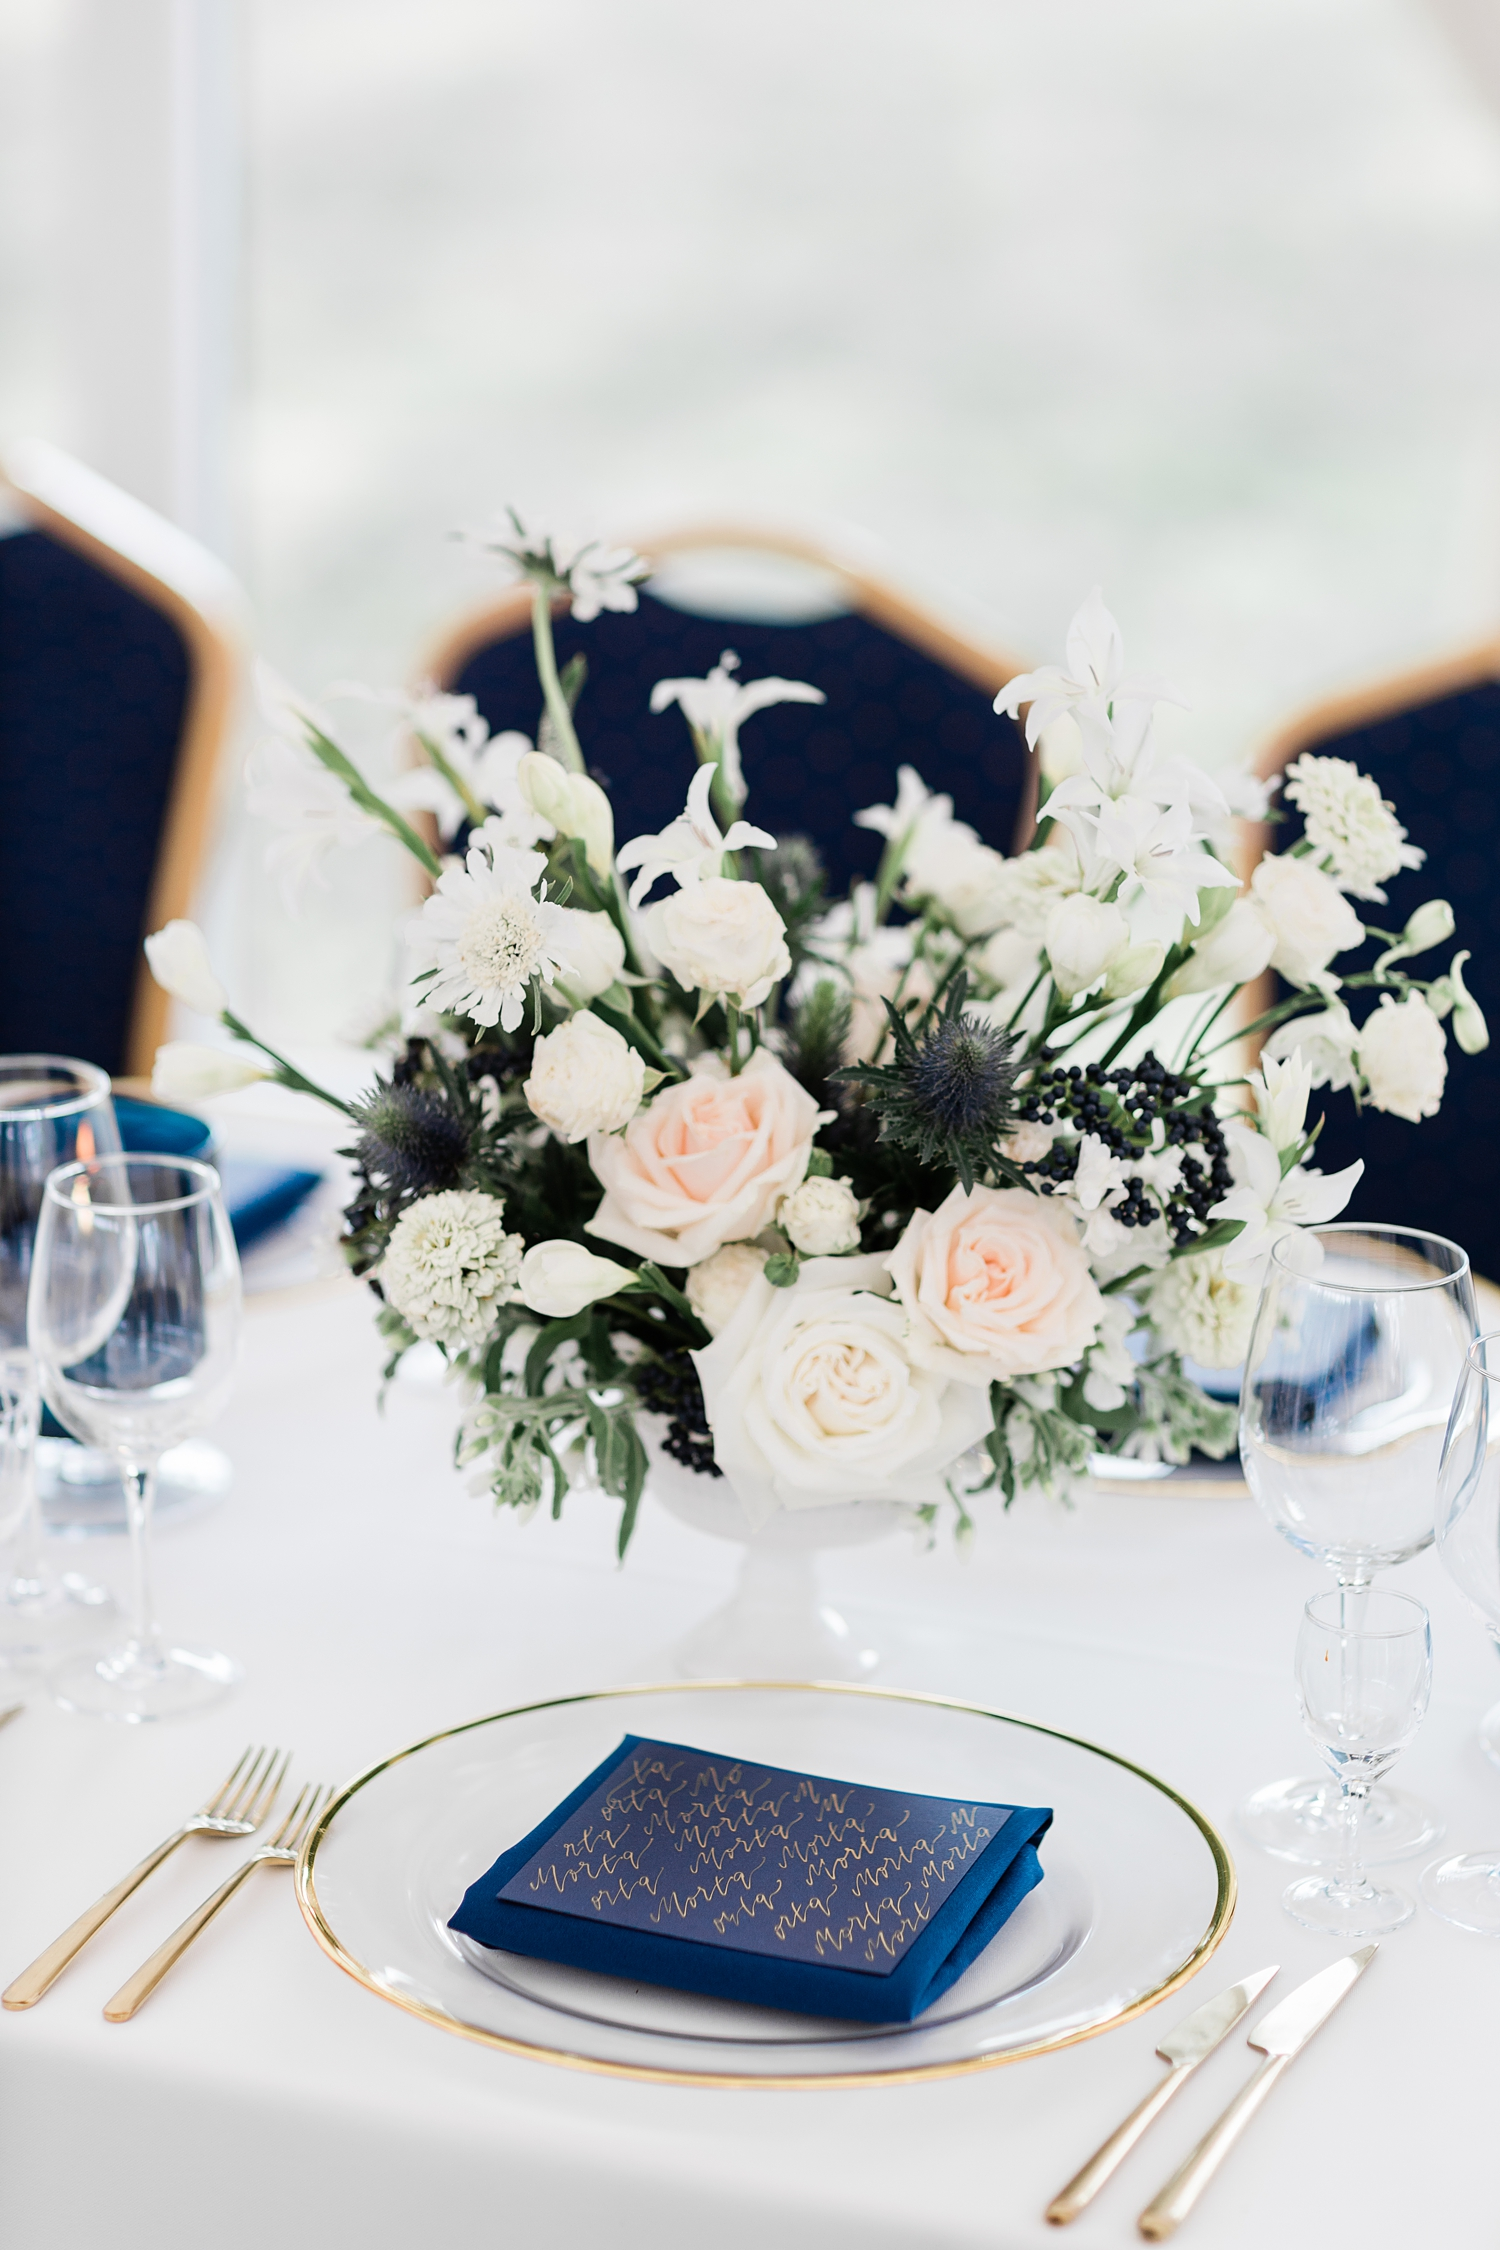 Closeup of floral centerpiece - photo by Jurgita Lukos Photography